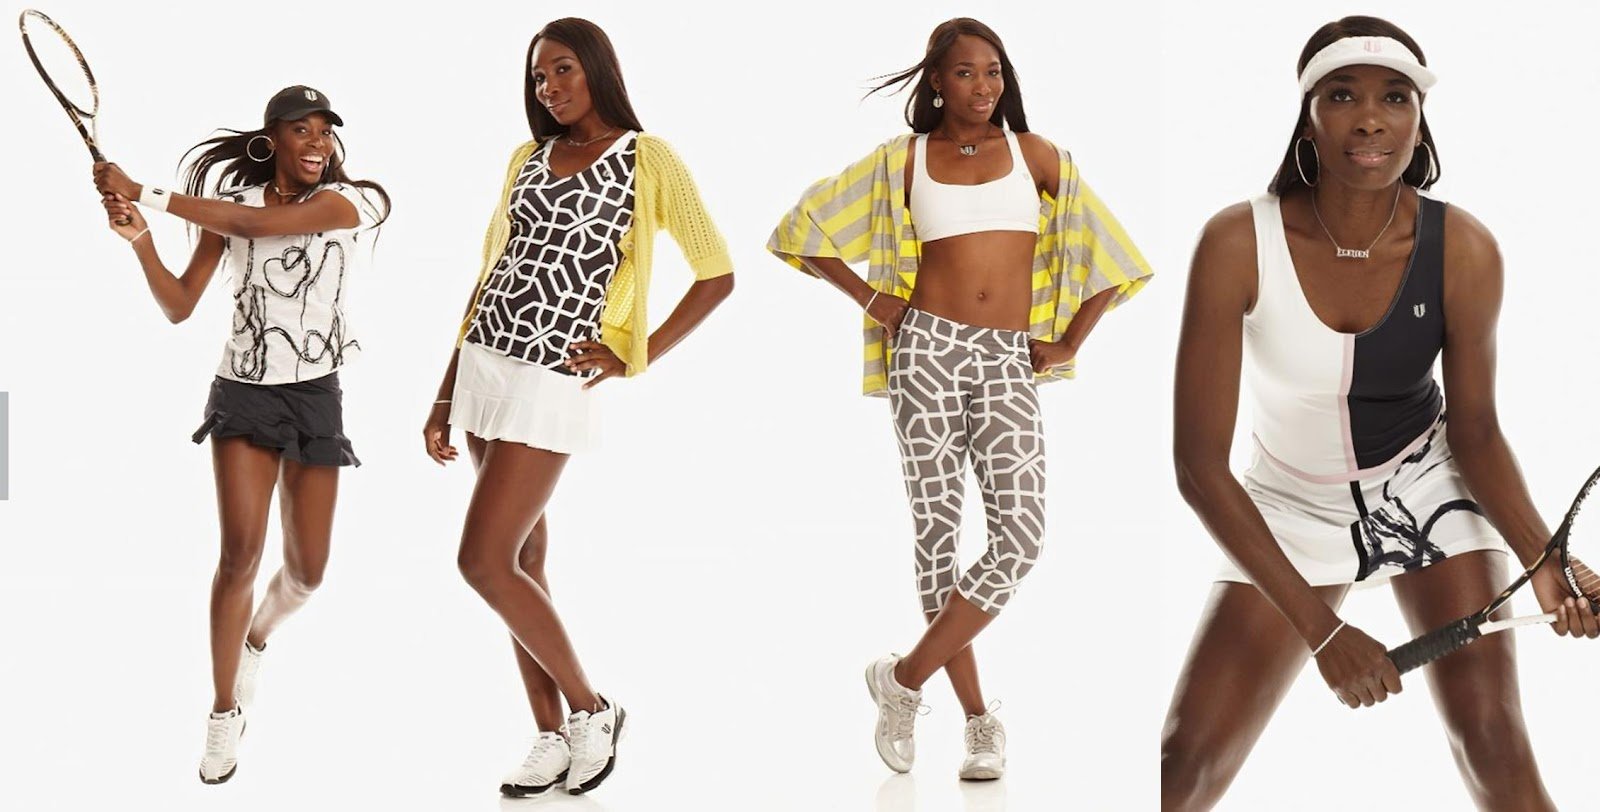 Venus Williams clothing brand